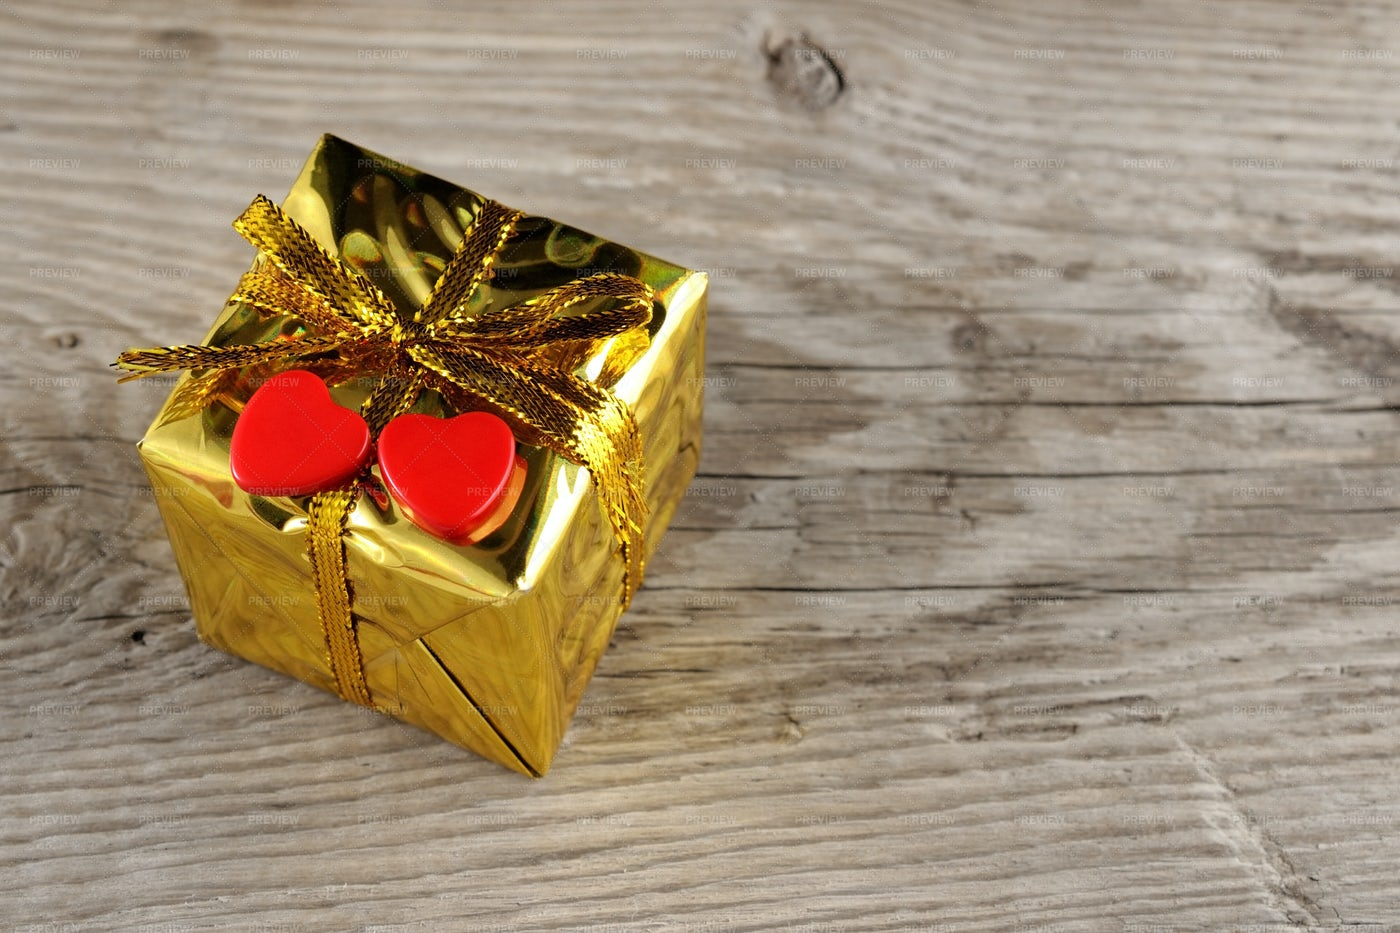 Valentine Gift Box With Two Hearts: Stock Photos